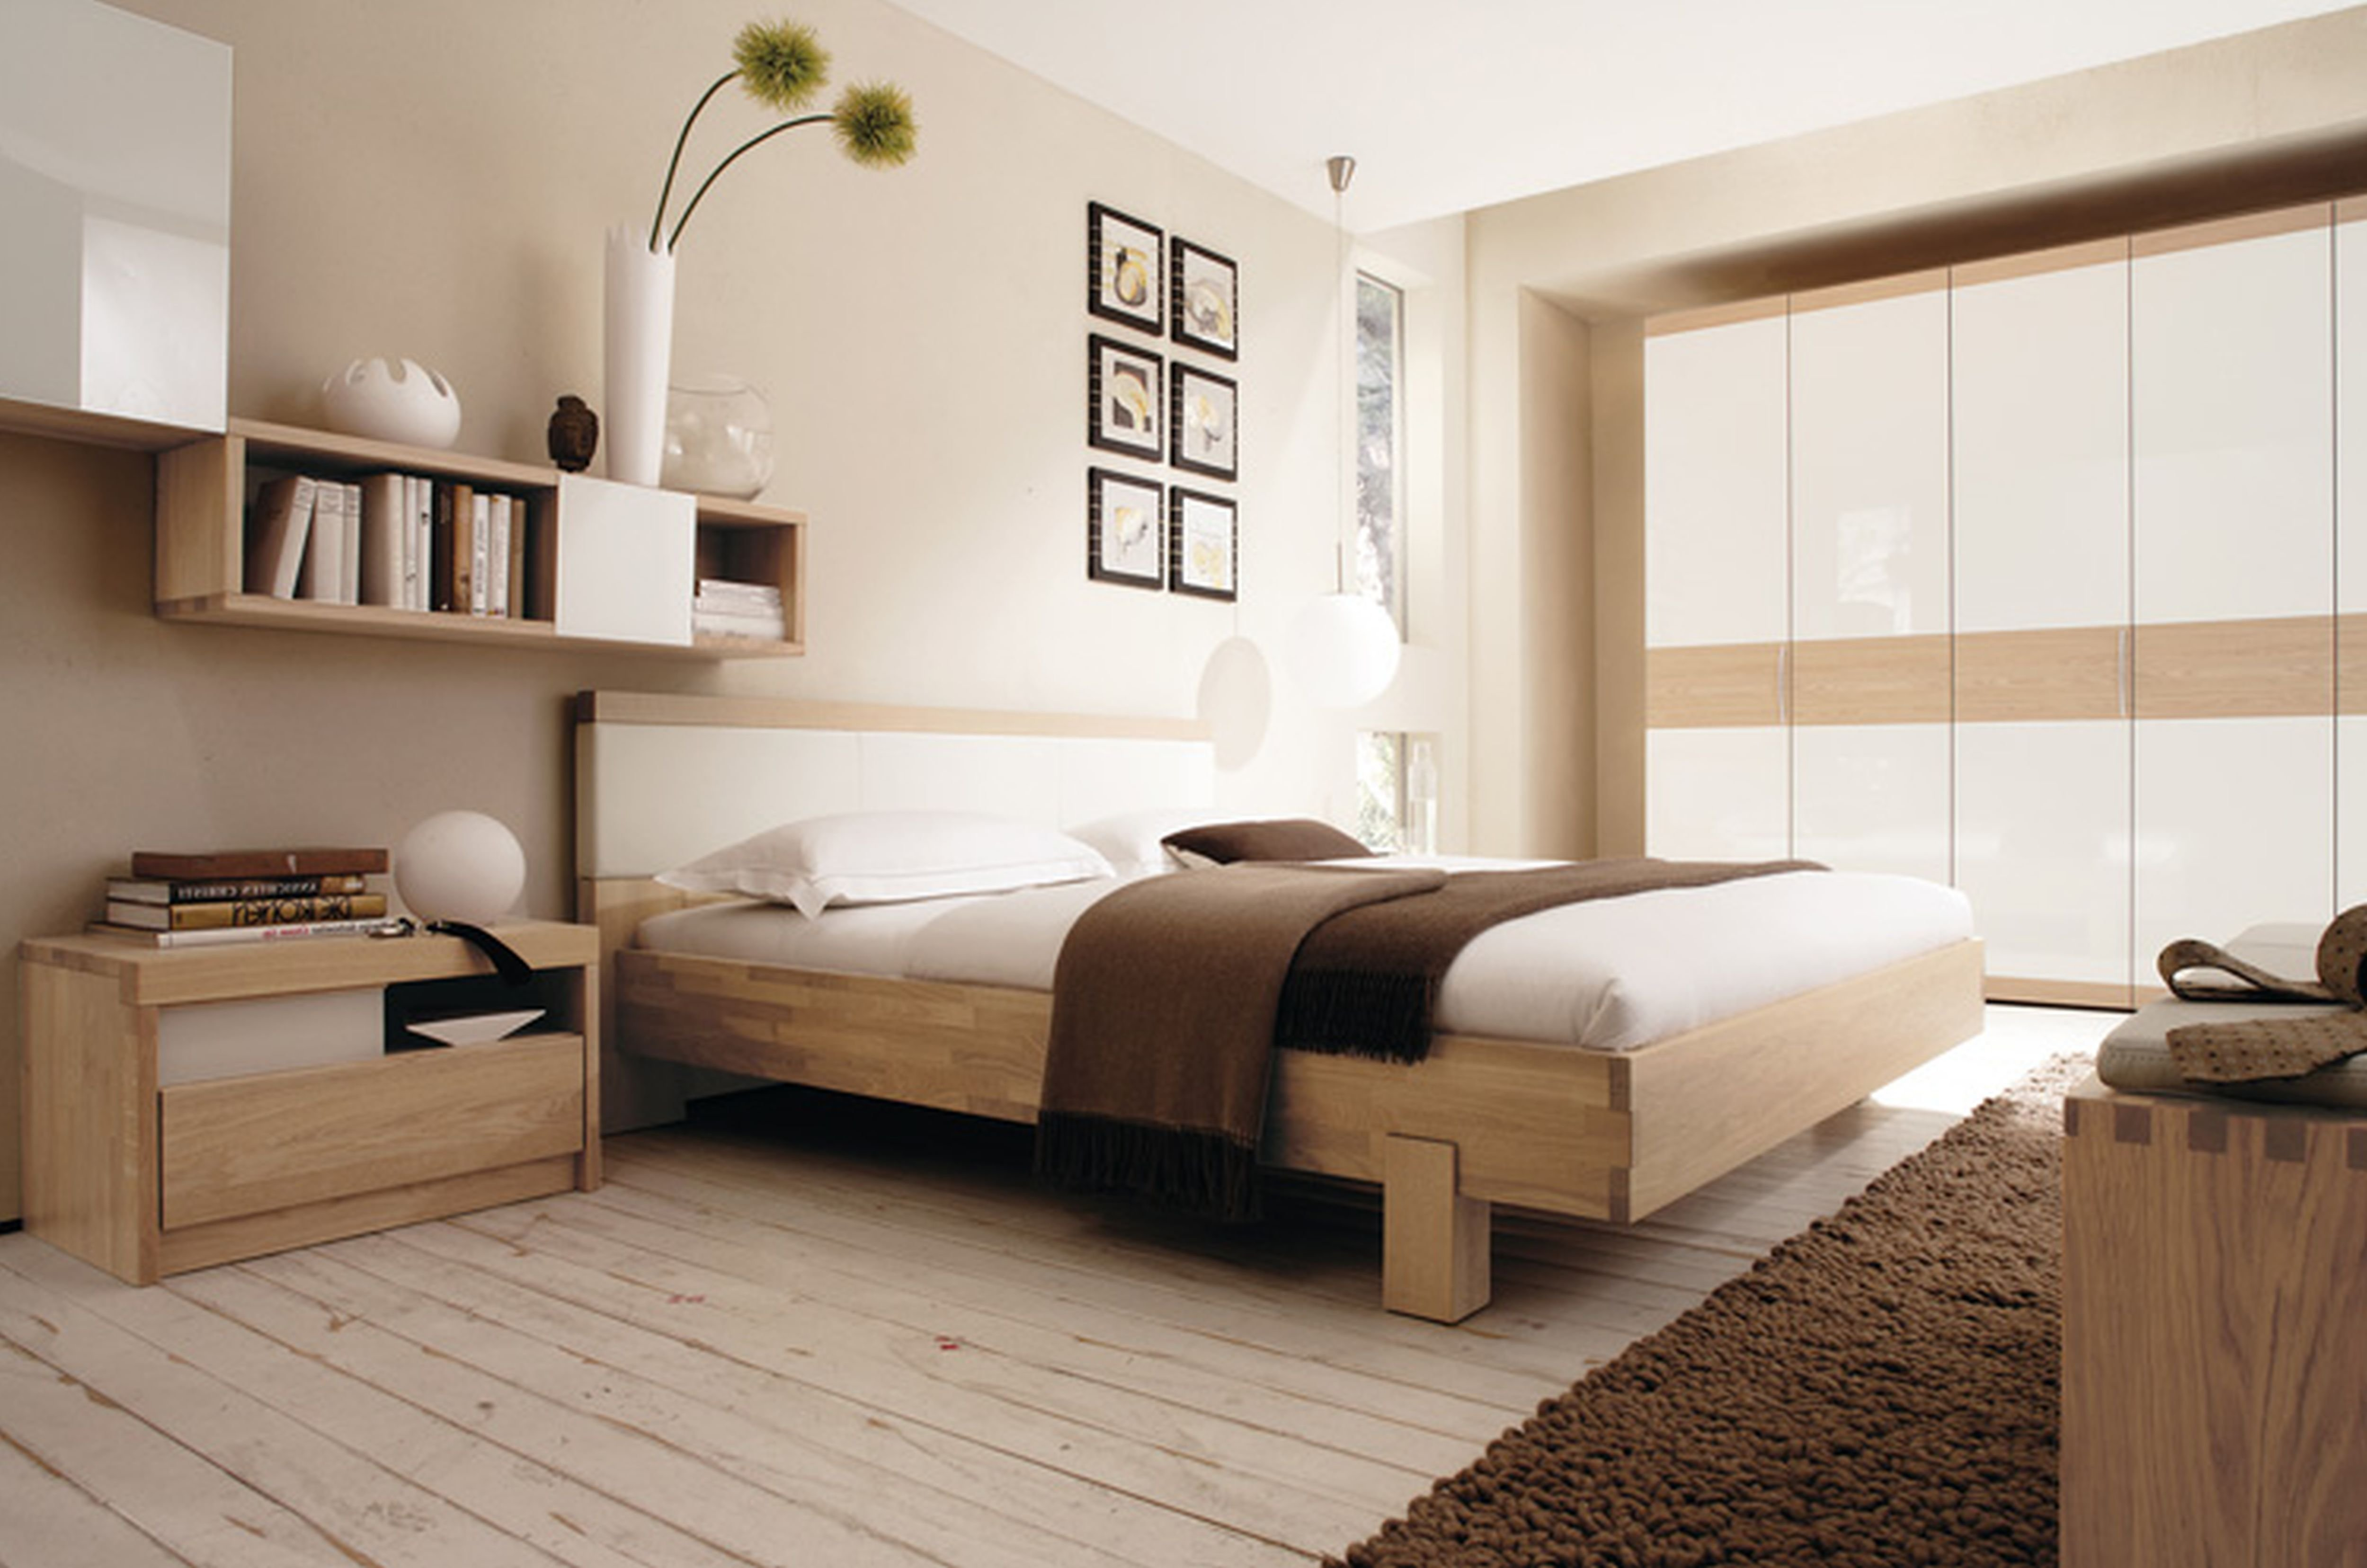 Best Bedroom Design Gallery For Inspiration – The Wow Style With Pictures